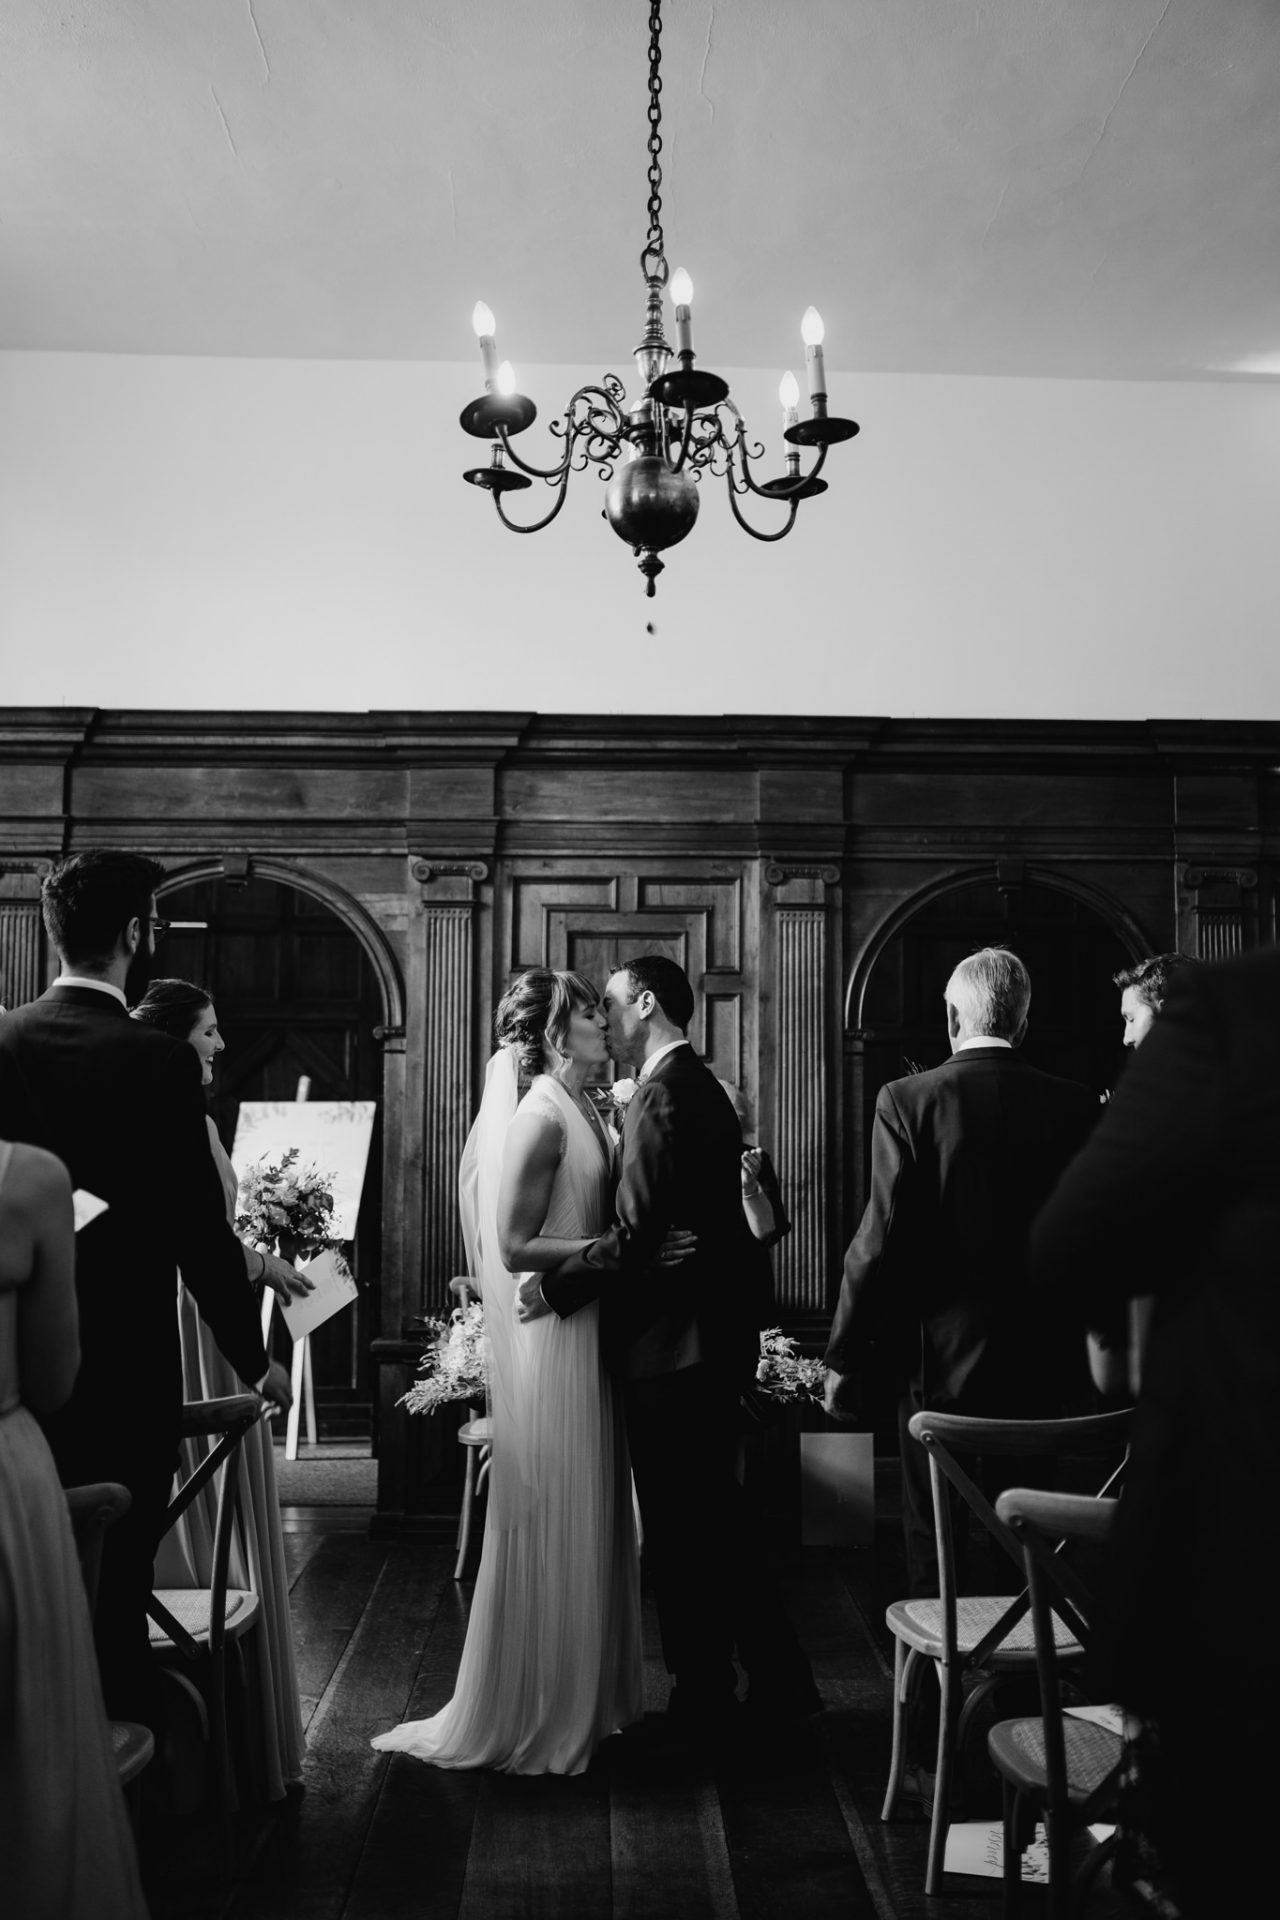 first kiss during the wedding ceremony